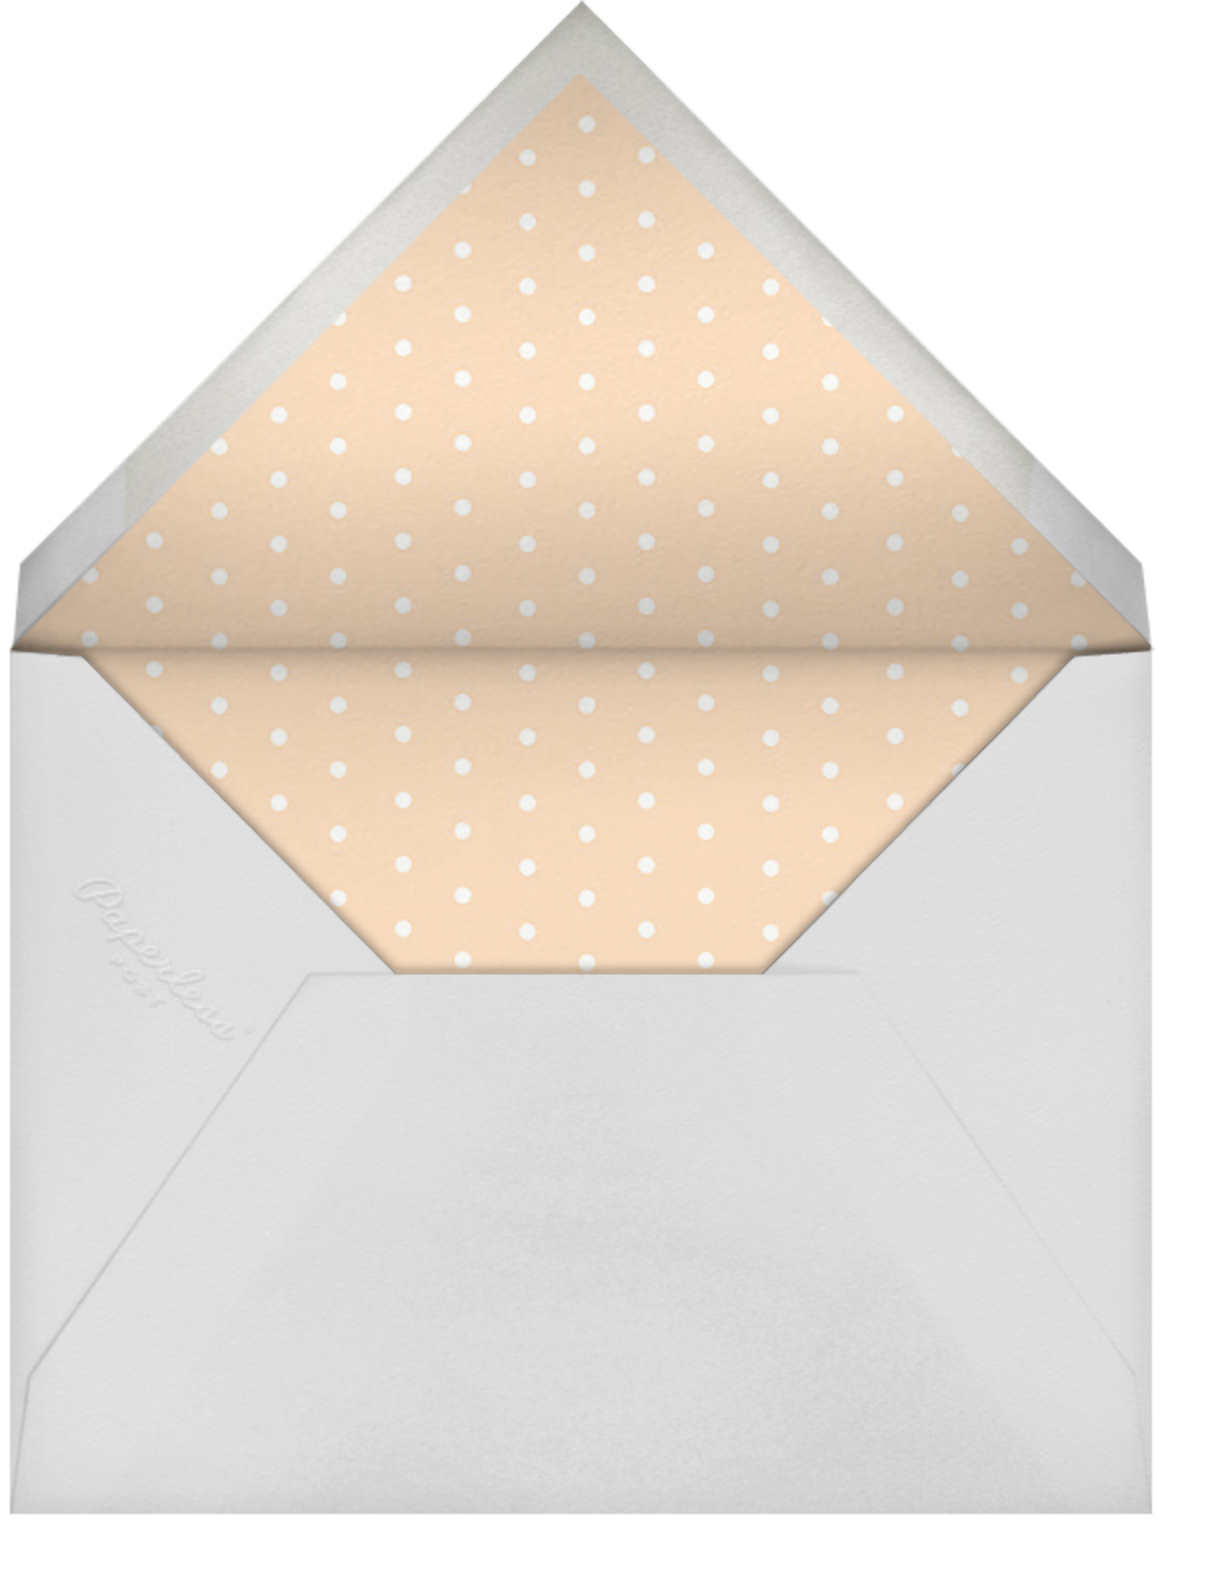 Hot Air Balloon Cluster - White/Bellini - Paperless Post - Retirement party - envelope back